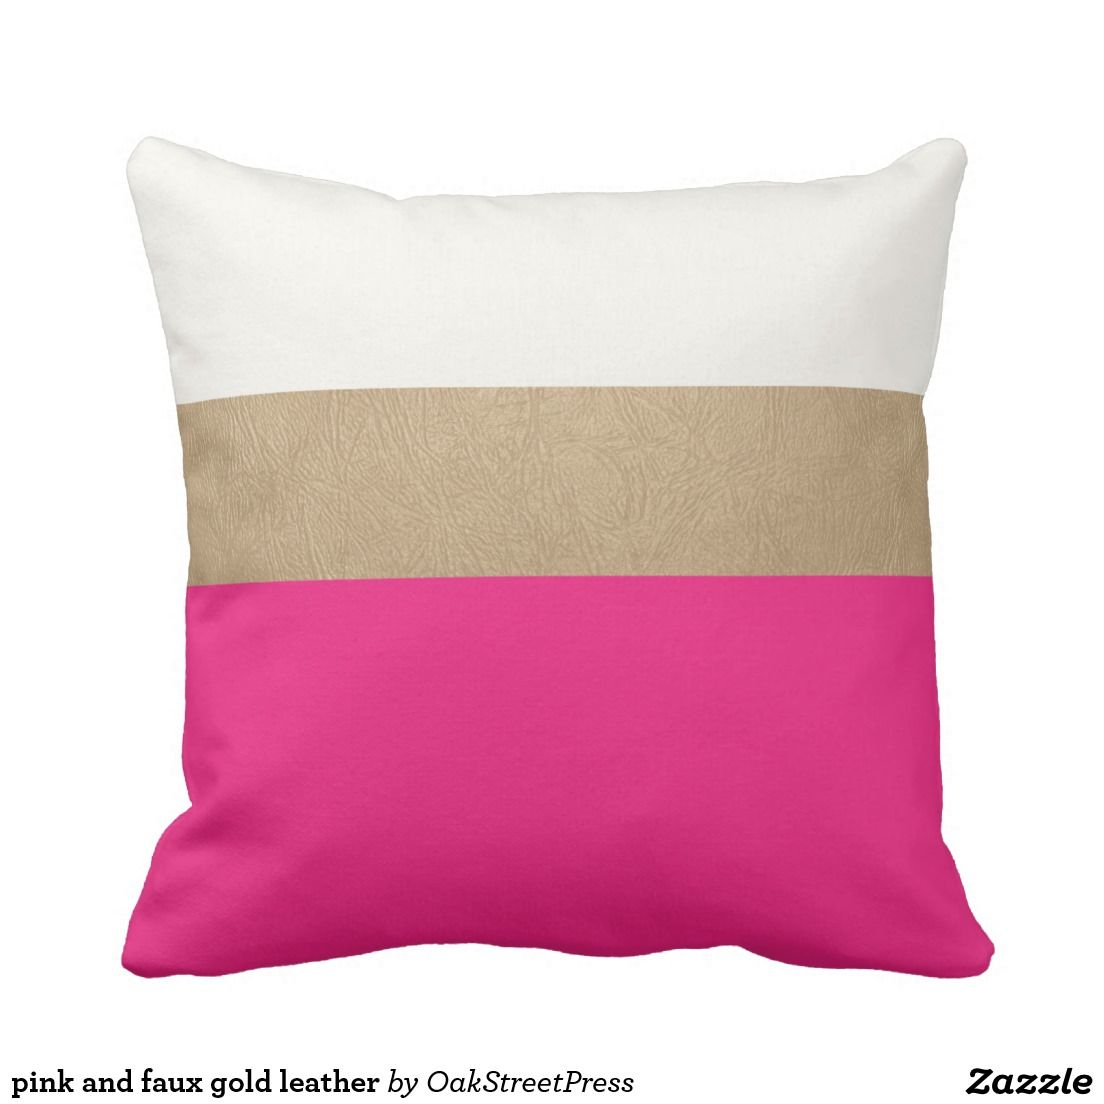 pink and faux gold leather